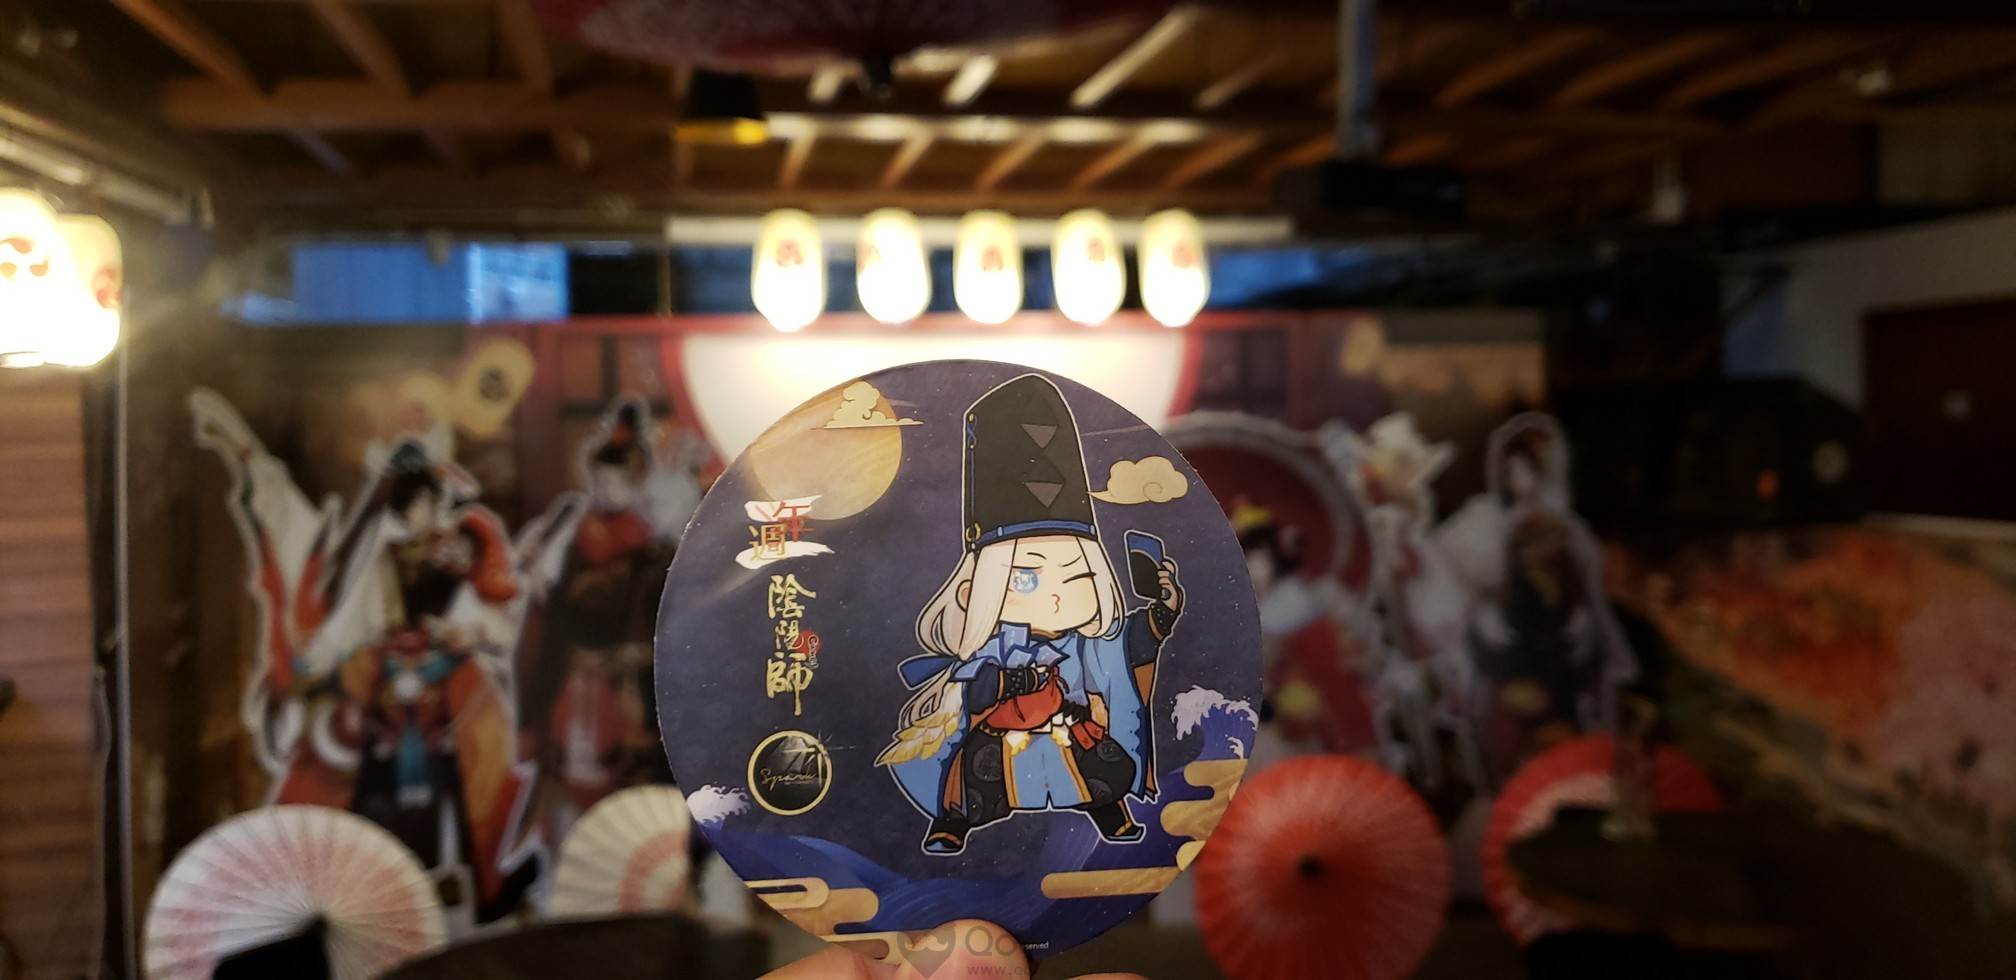 Onmyoji-Themed Restaurant @ Hong Kong!